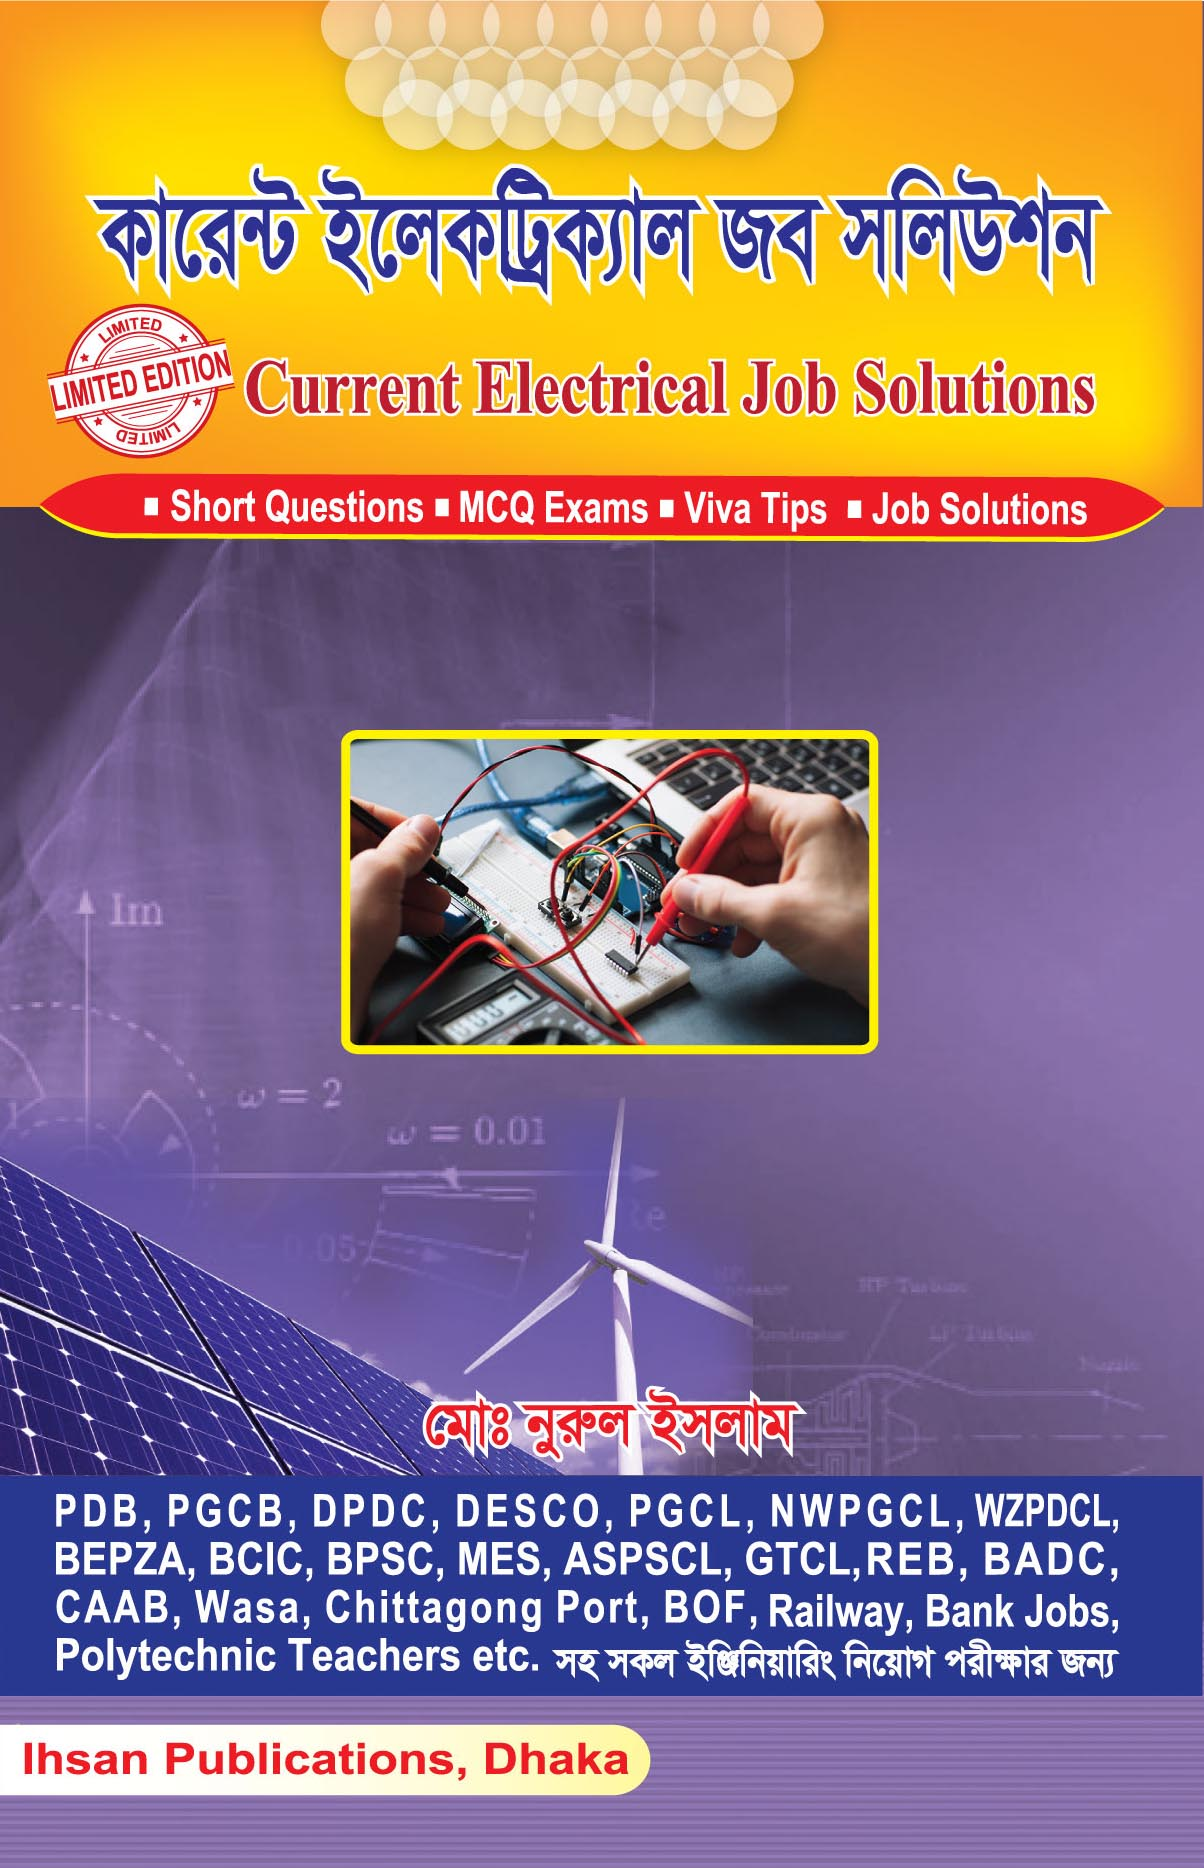 Current Job Solution - Electrical (2019) - Perfect DUET Admission &  Engineers Recruitment Guide